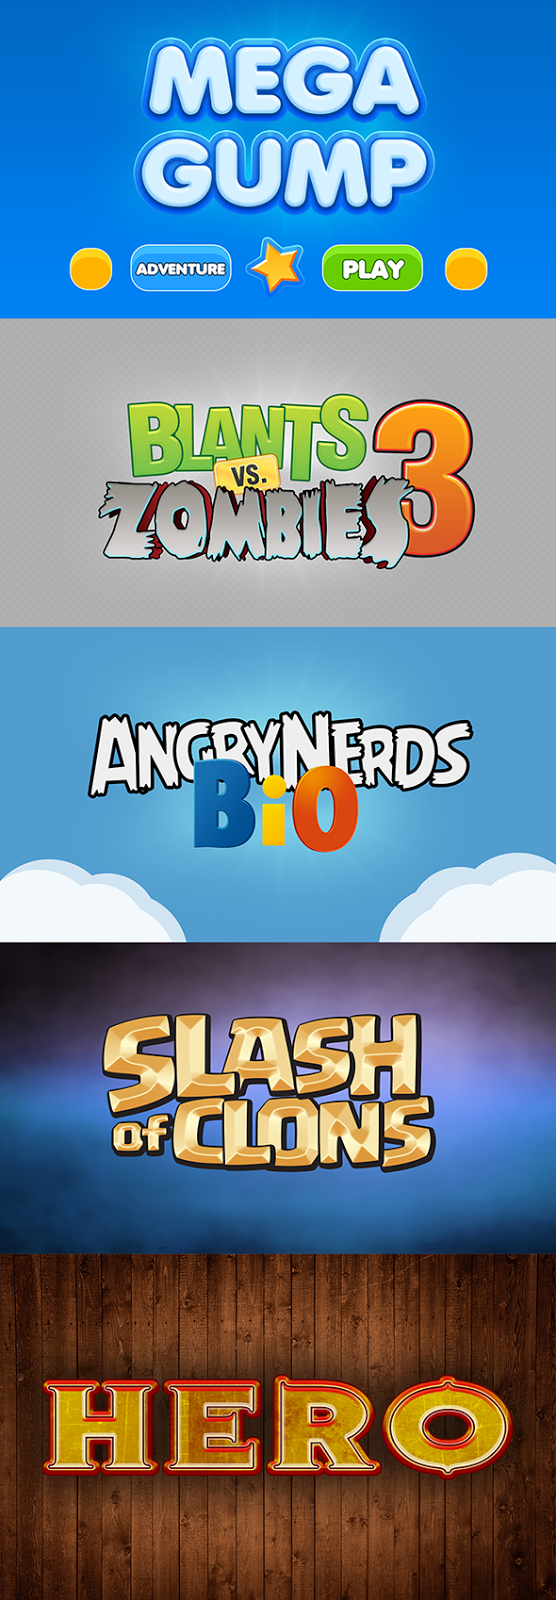 Popular Game Text Effects PSD